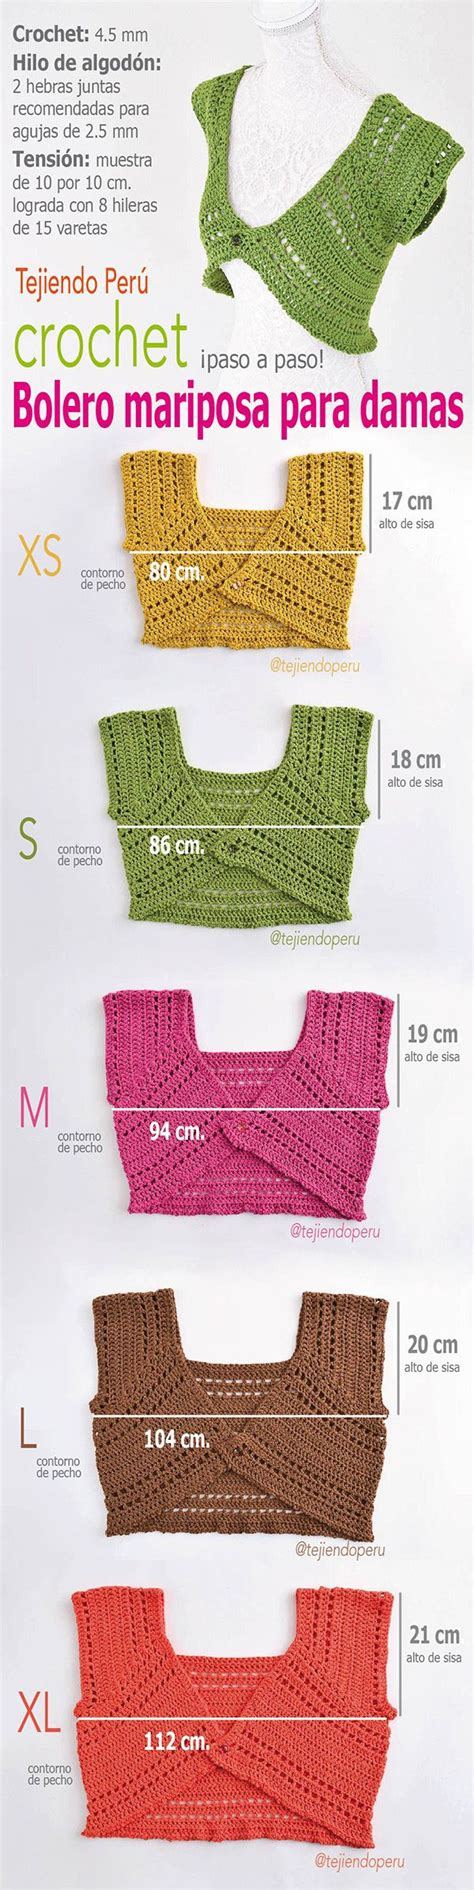 Colorful Knitted Sweater Sml 2174 best crochet clothing inspiration images on